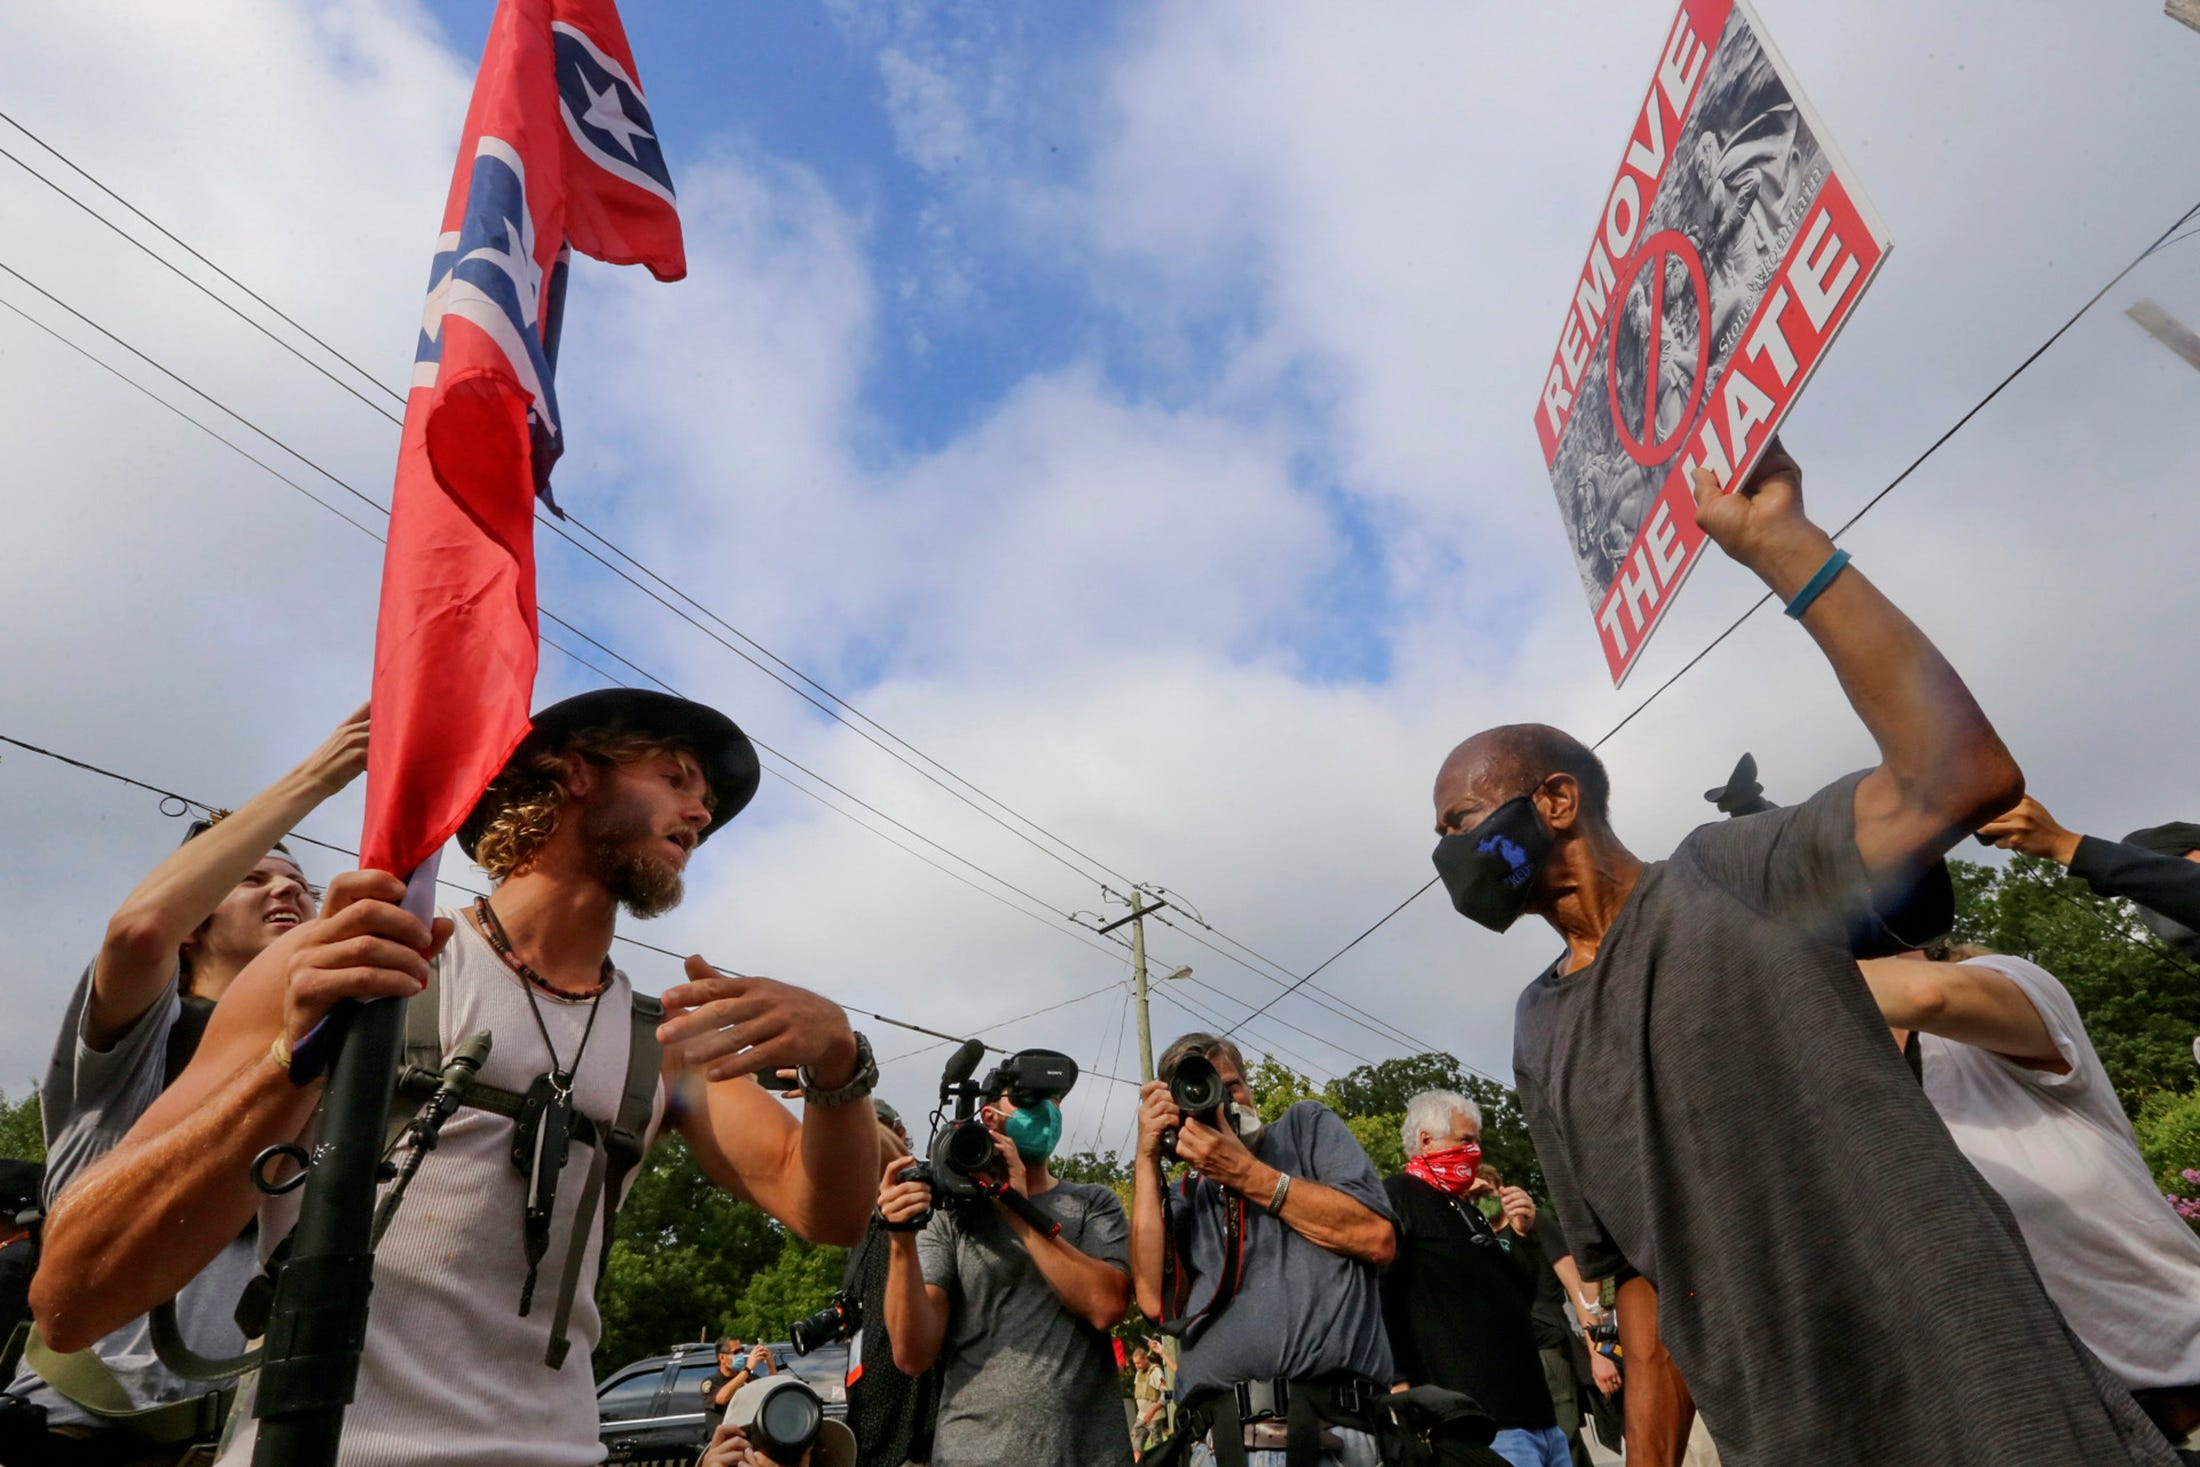 White supremacist propaganda surged in 2020, report says 2